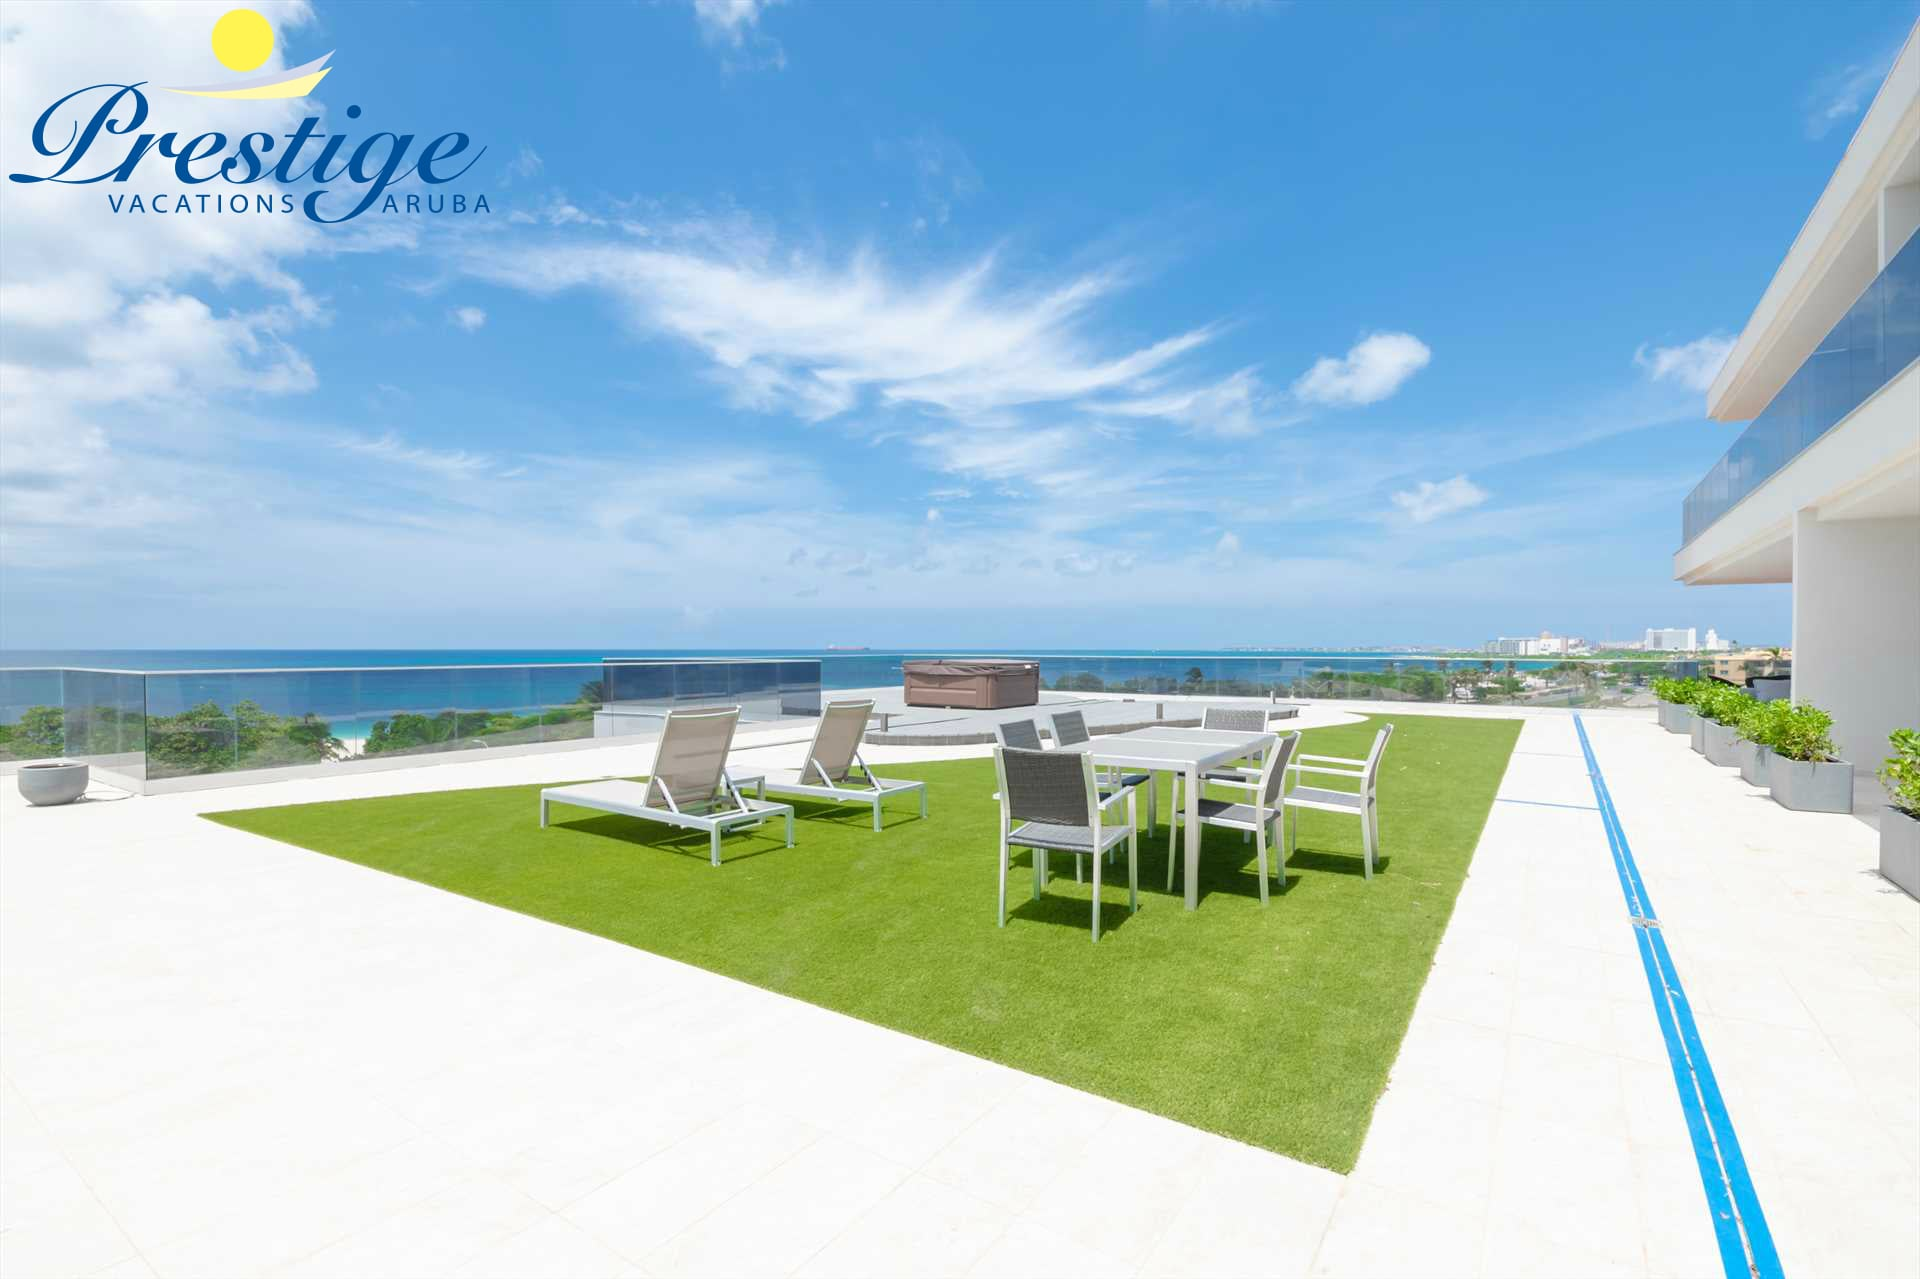 The resort rooftop with outdoor furniture and amazing ocean views (temporary images)